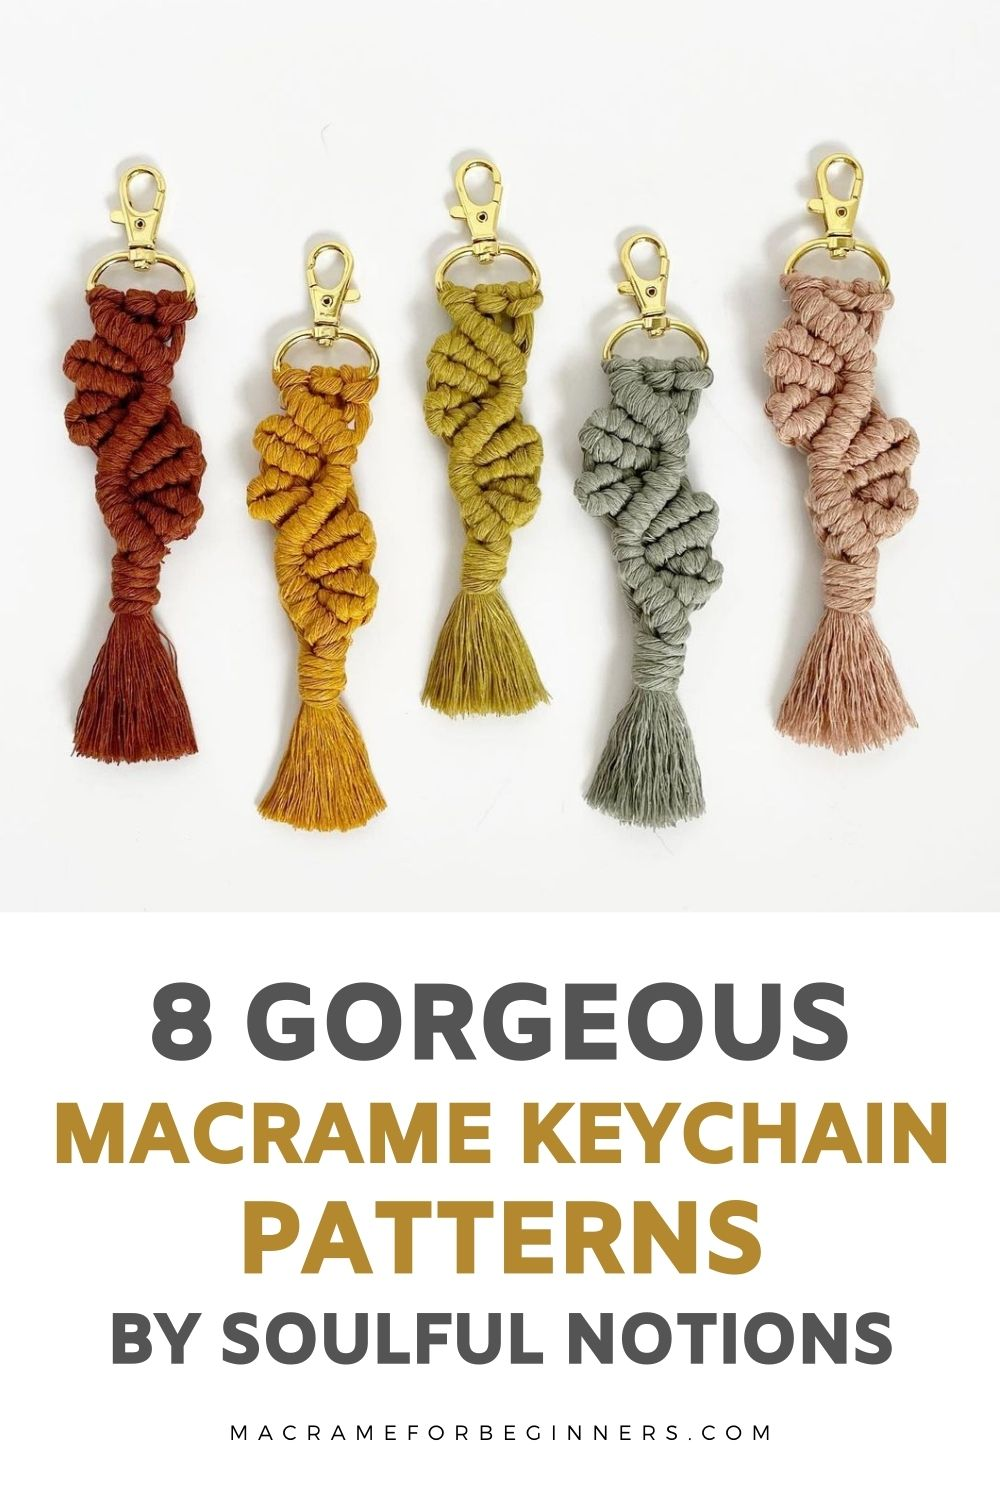 Macrame Keychain Tutorials by Soulful Notions - Macrame for Beginners